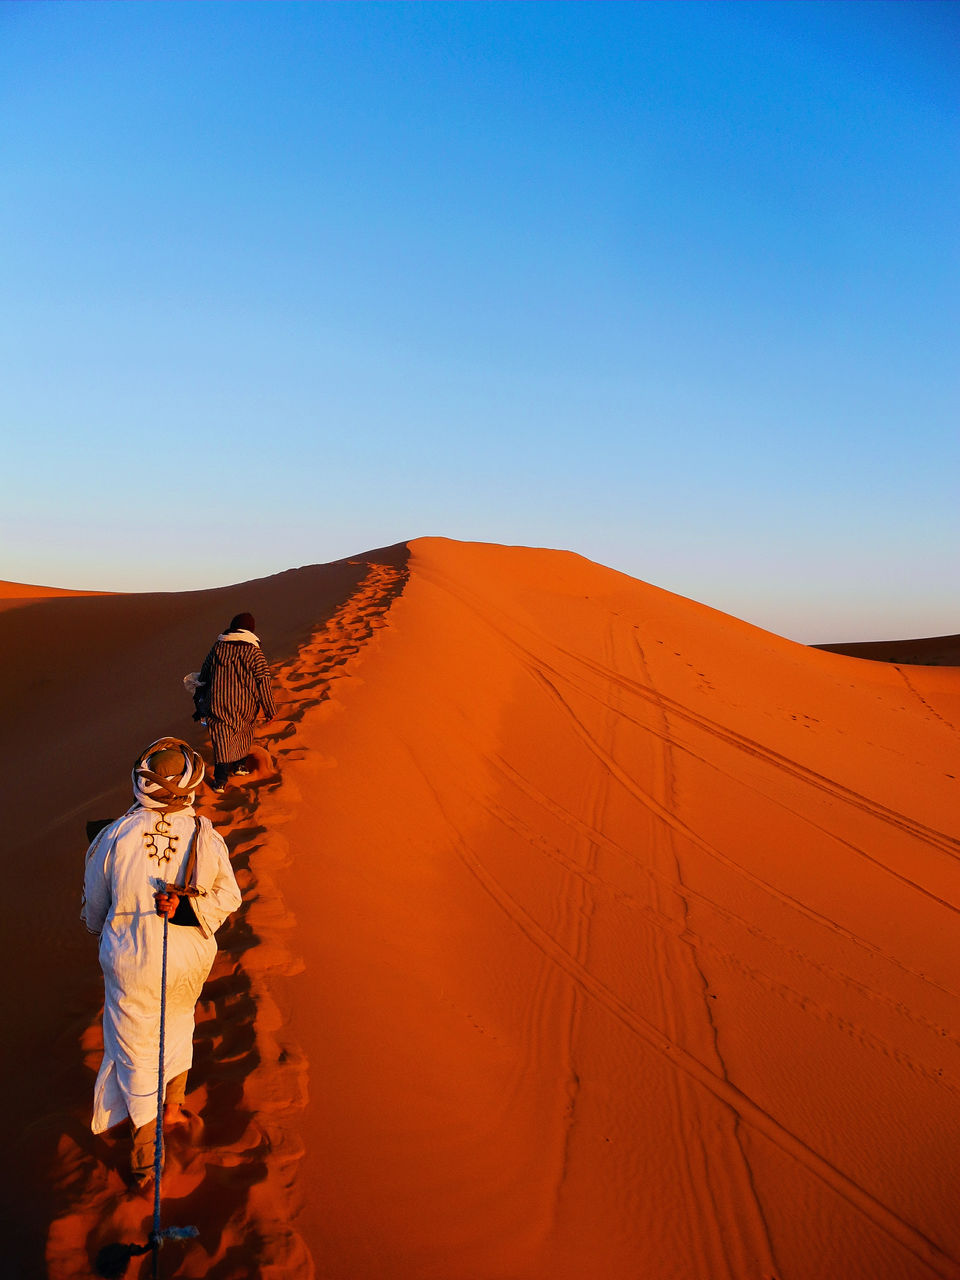 Rear View Of People Walking On Sand Dune Against Clear Blue Sky